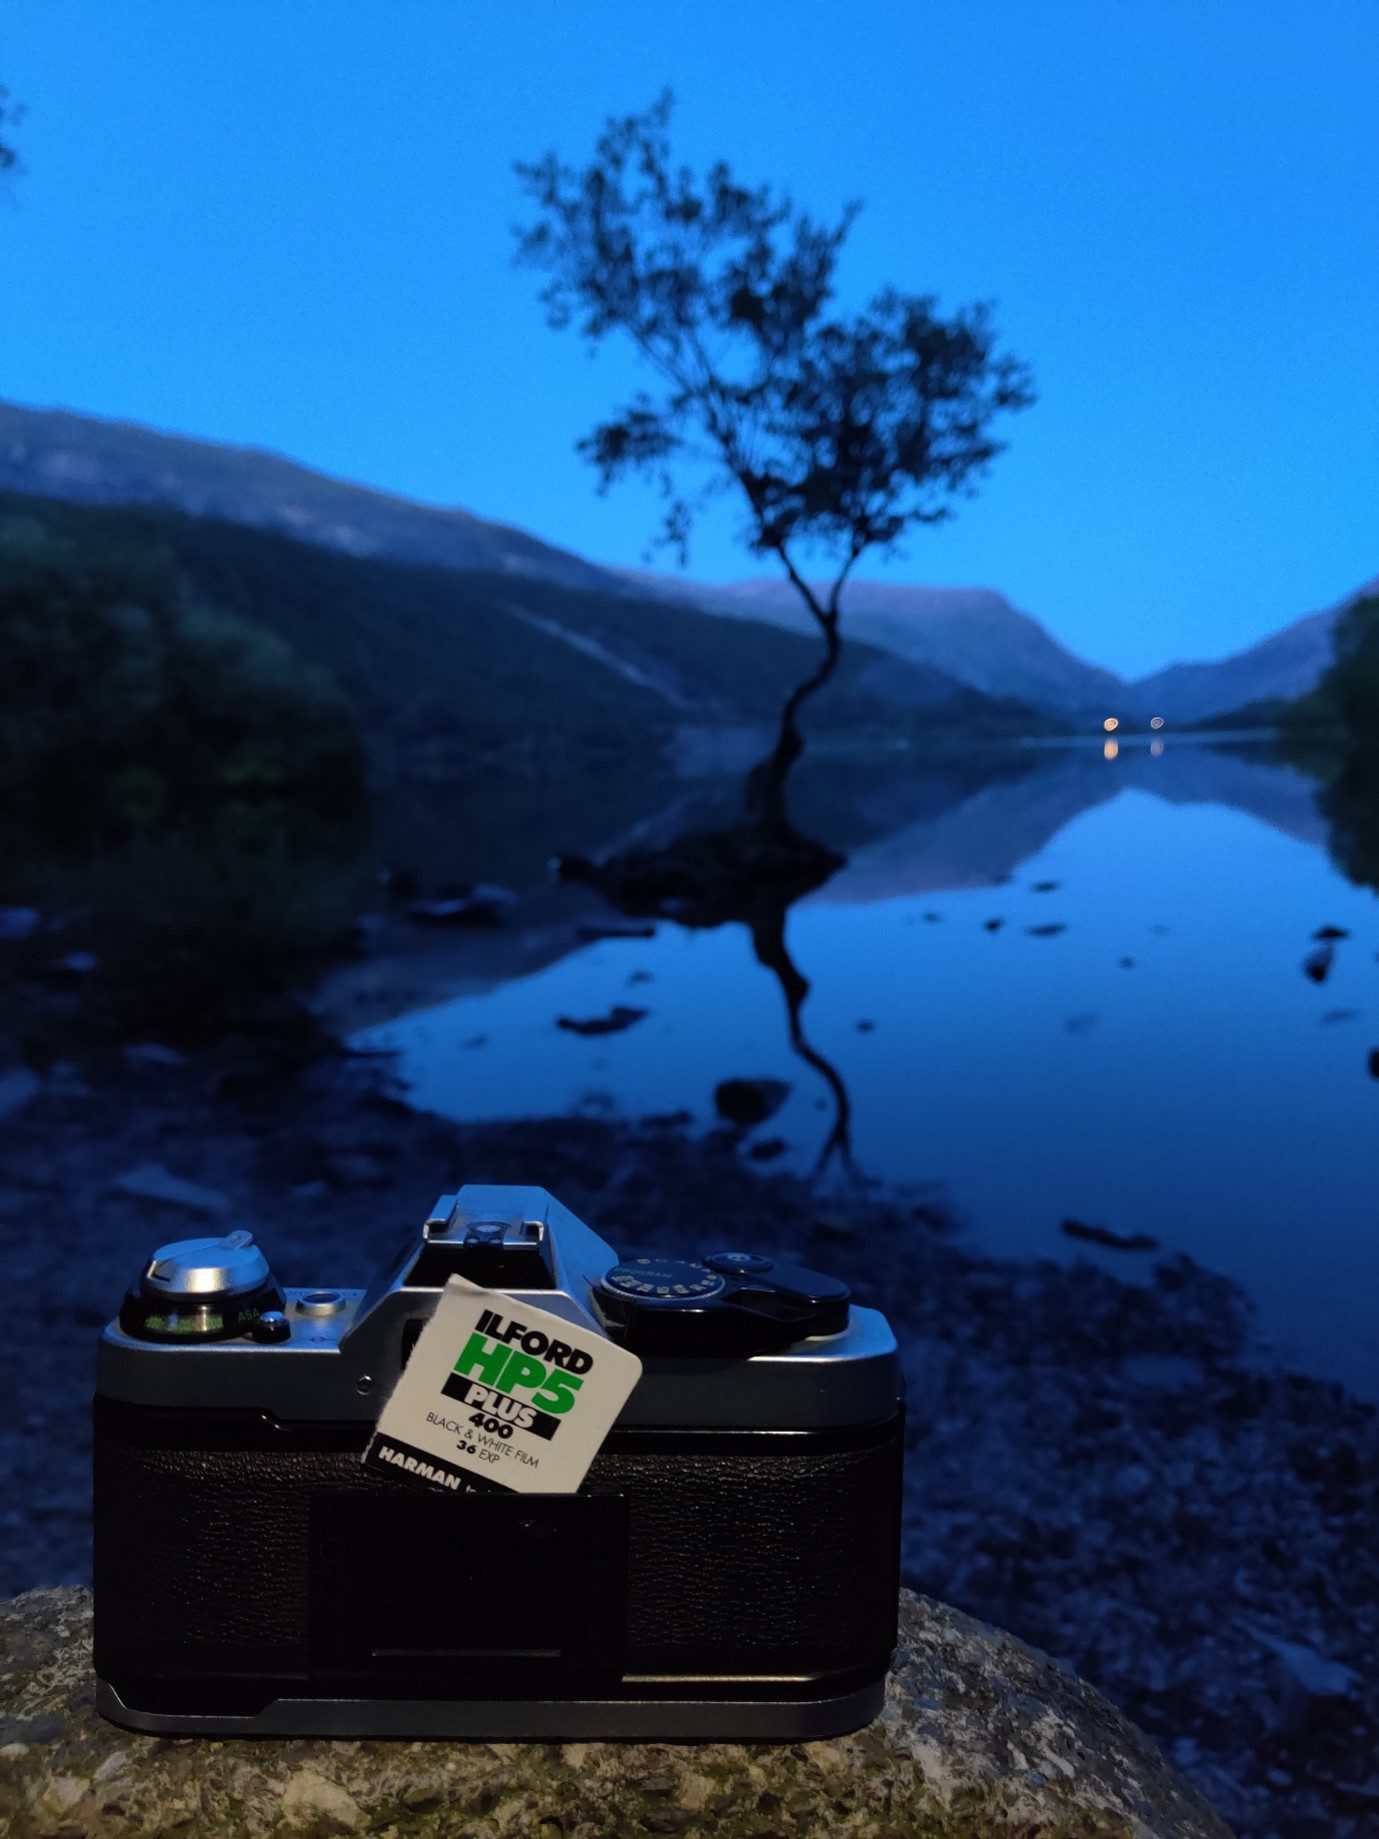 The back of the Canon AE-1 camera at the edge of Padarn lake, Llanberis. With the lonely tree in the background. Shot on a OnePlus 7T.